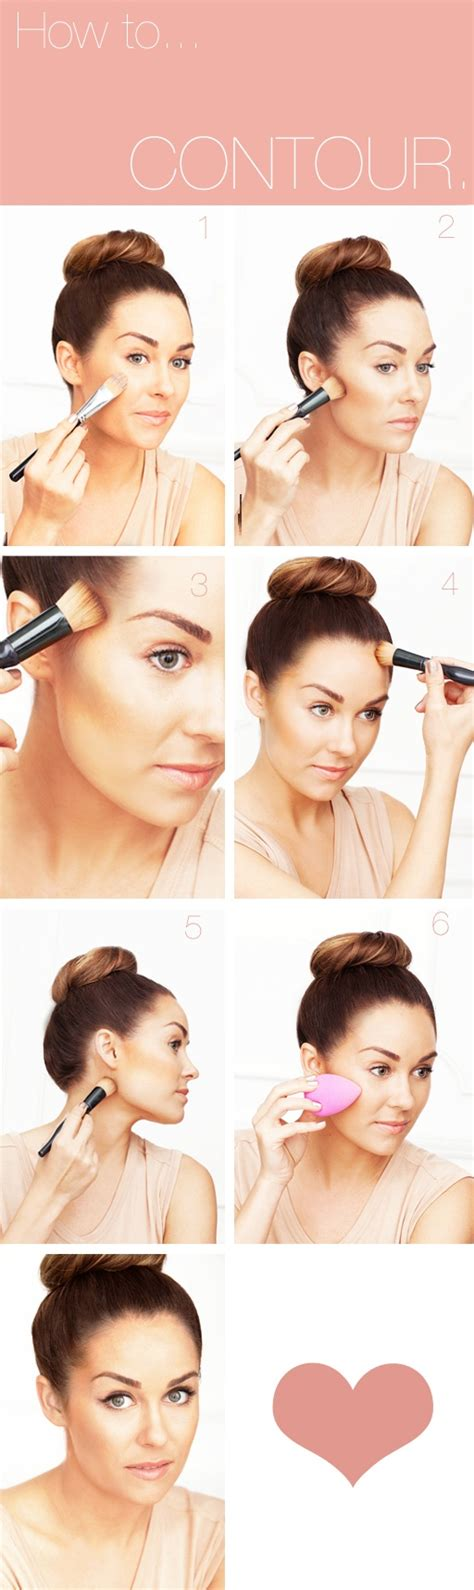 tutorial makeup contouring 10 light contouring tutorials for every girl pretty designs